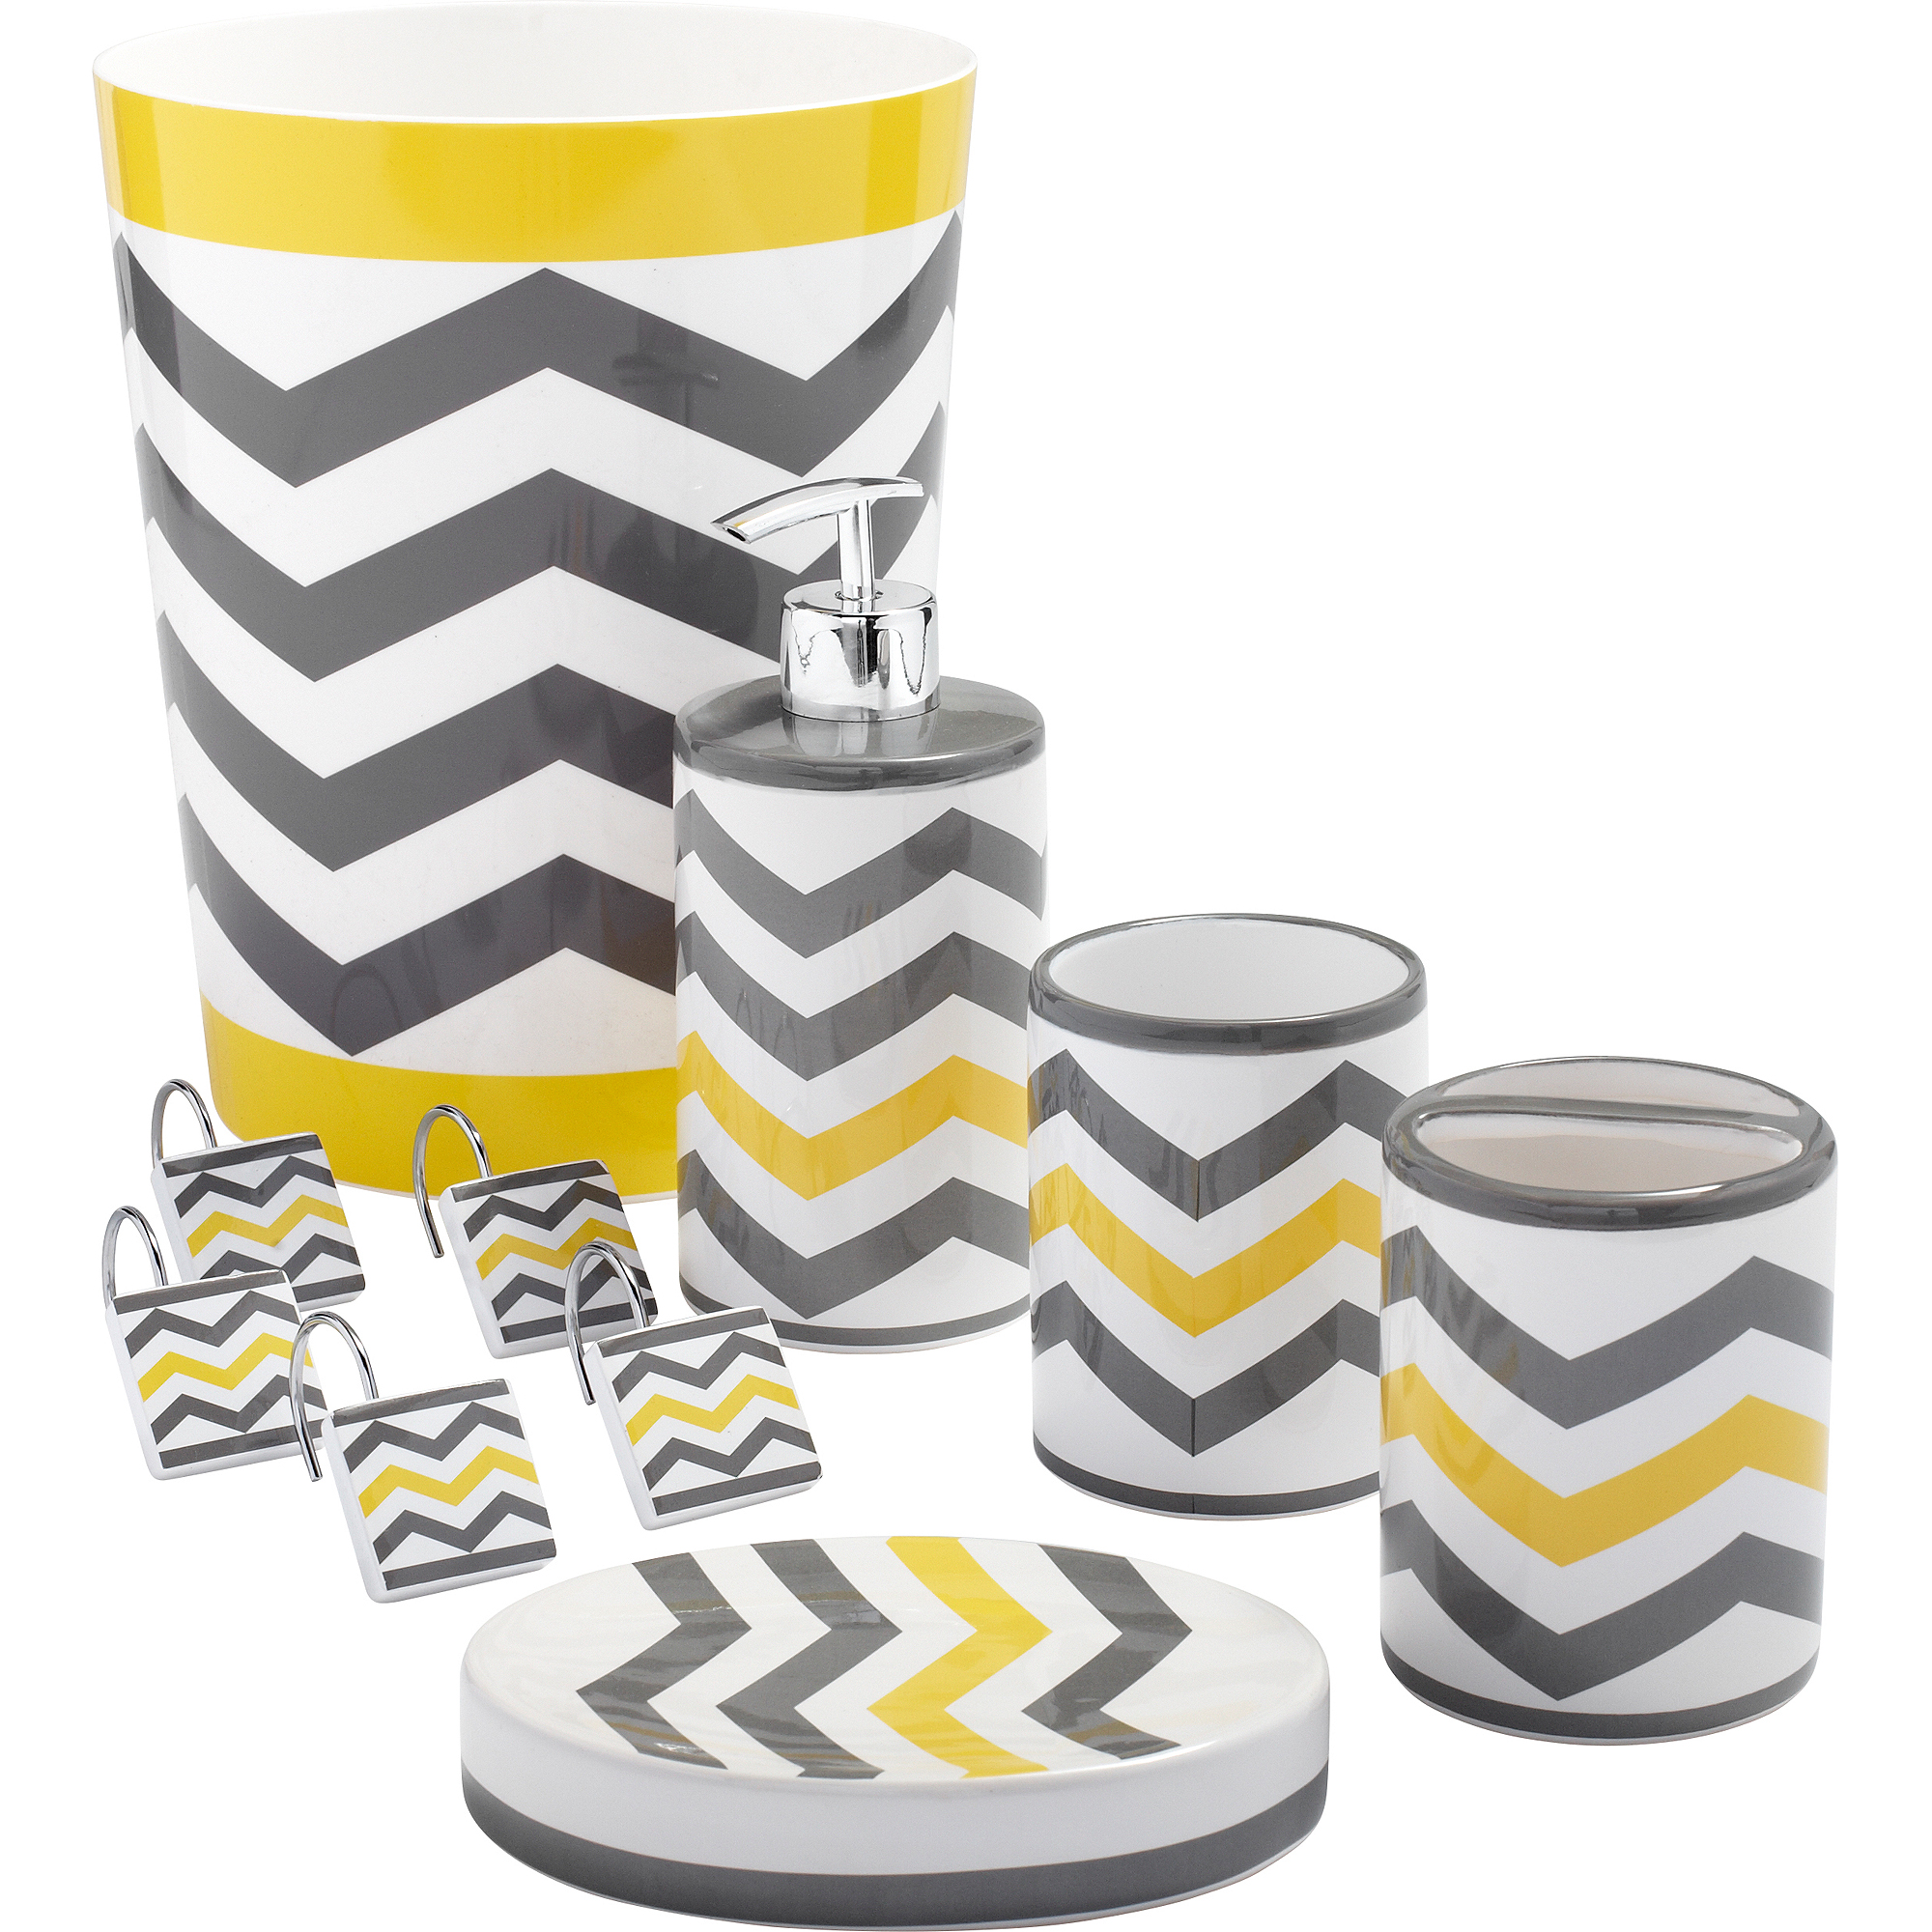 Chevron Shower Curtains mainstays chevron shower curtain hooks, yellow - walmart